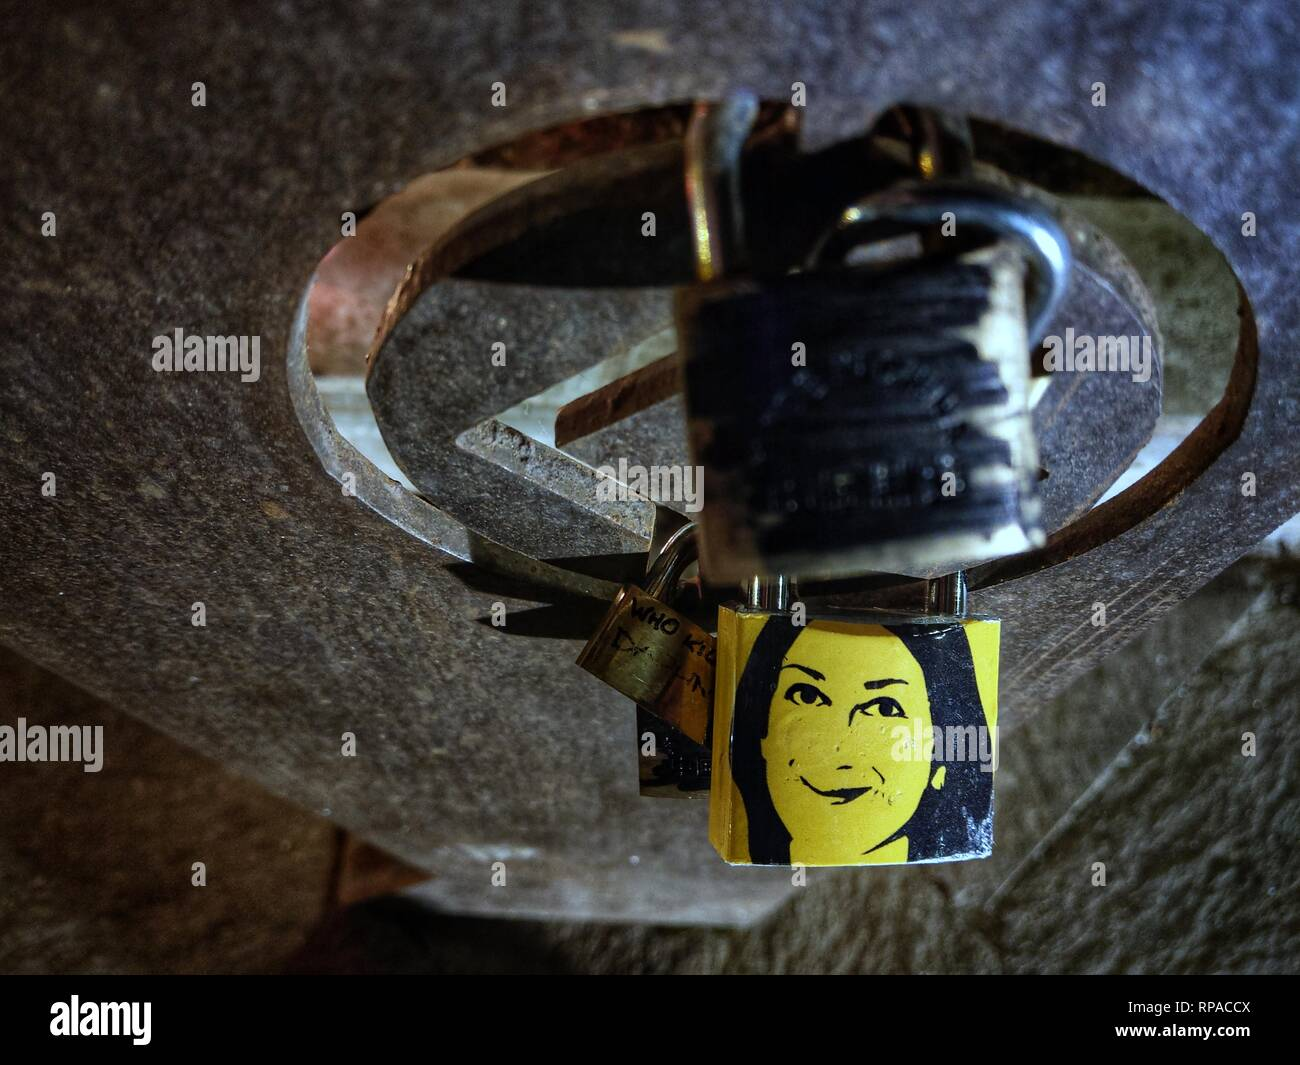 February 21, 2019 - Valletta, Malta - The image of murdered journalist Daphne Caruana Galizia on a lock at the Siege Memorial in Valletta, Malta. (Credit Image: © Sachelle Babbar/ZUMA Wire) - Stock Image